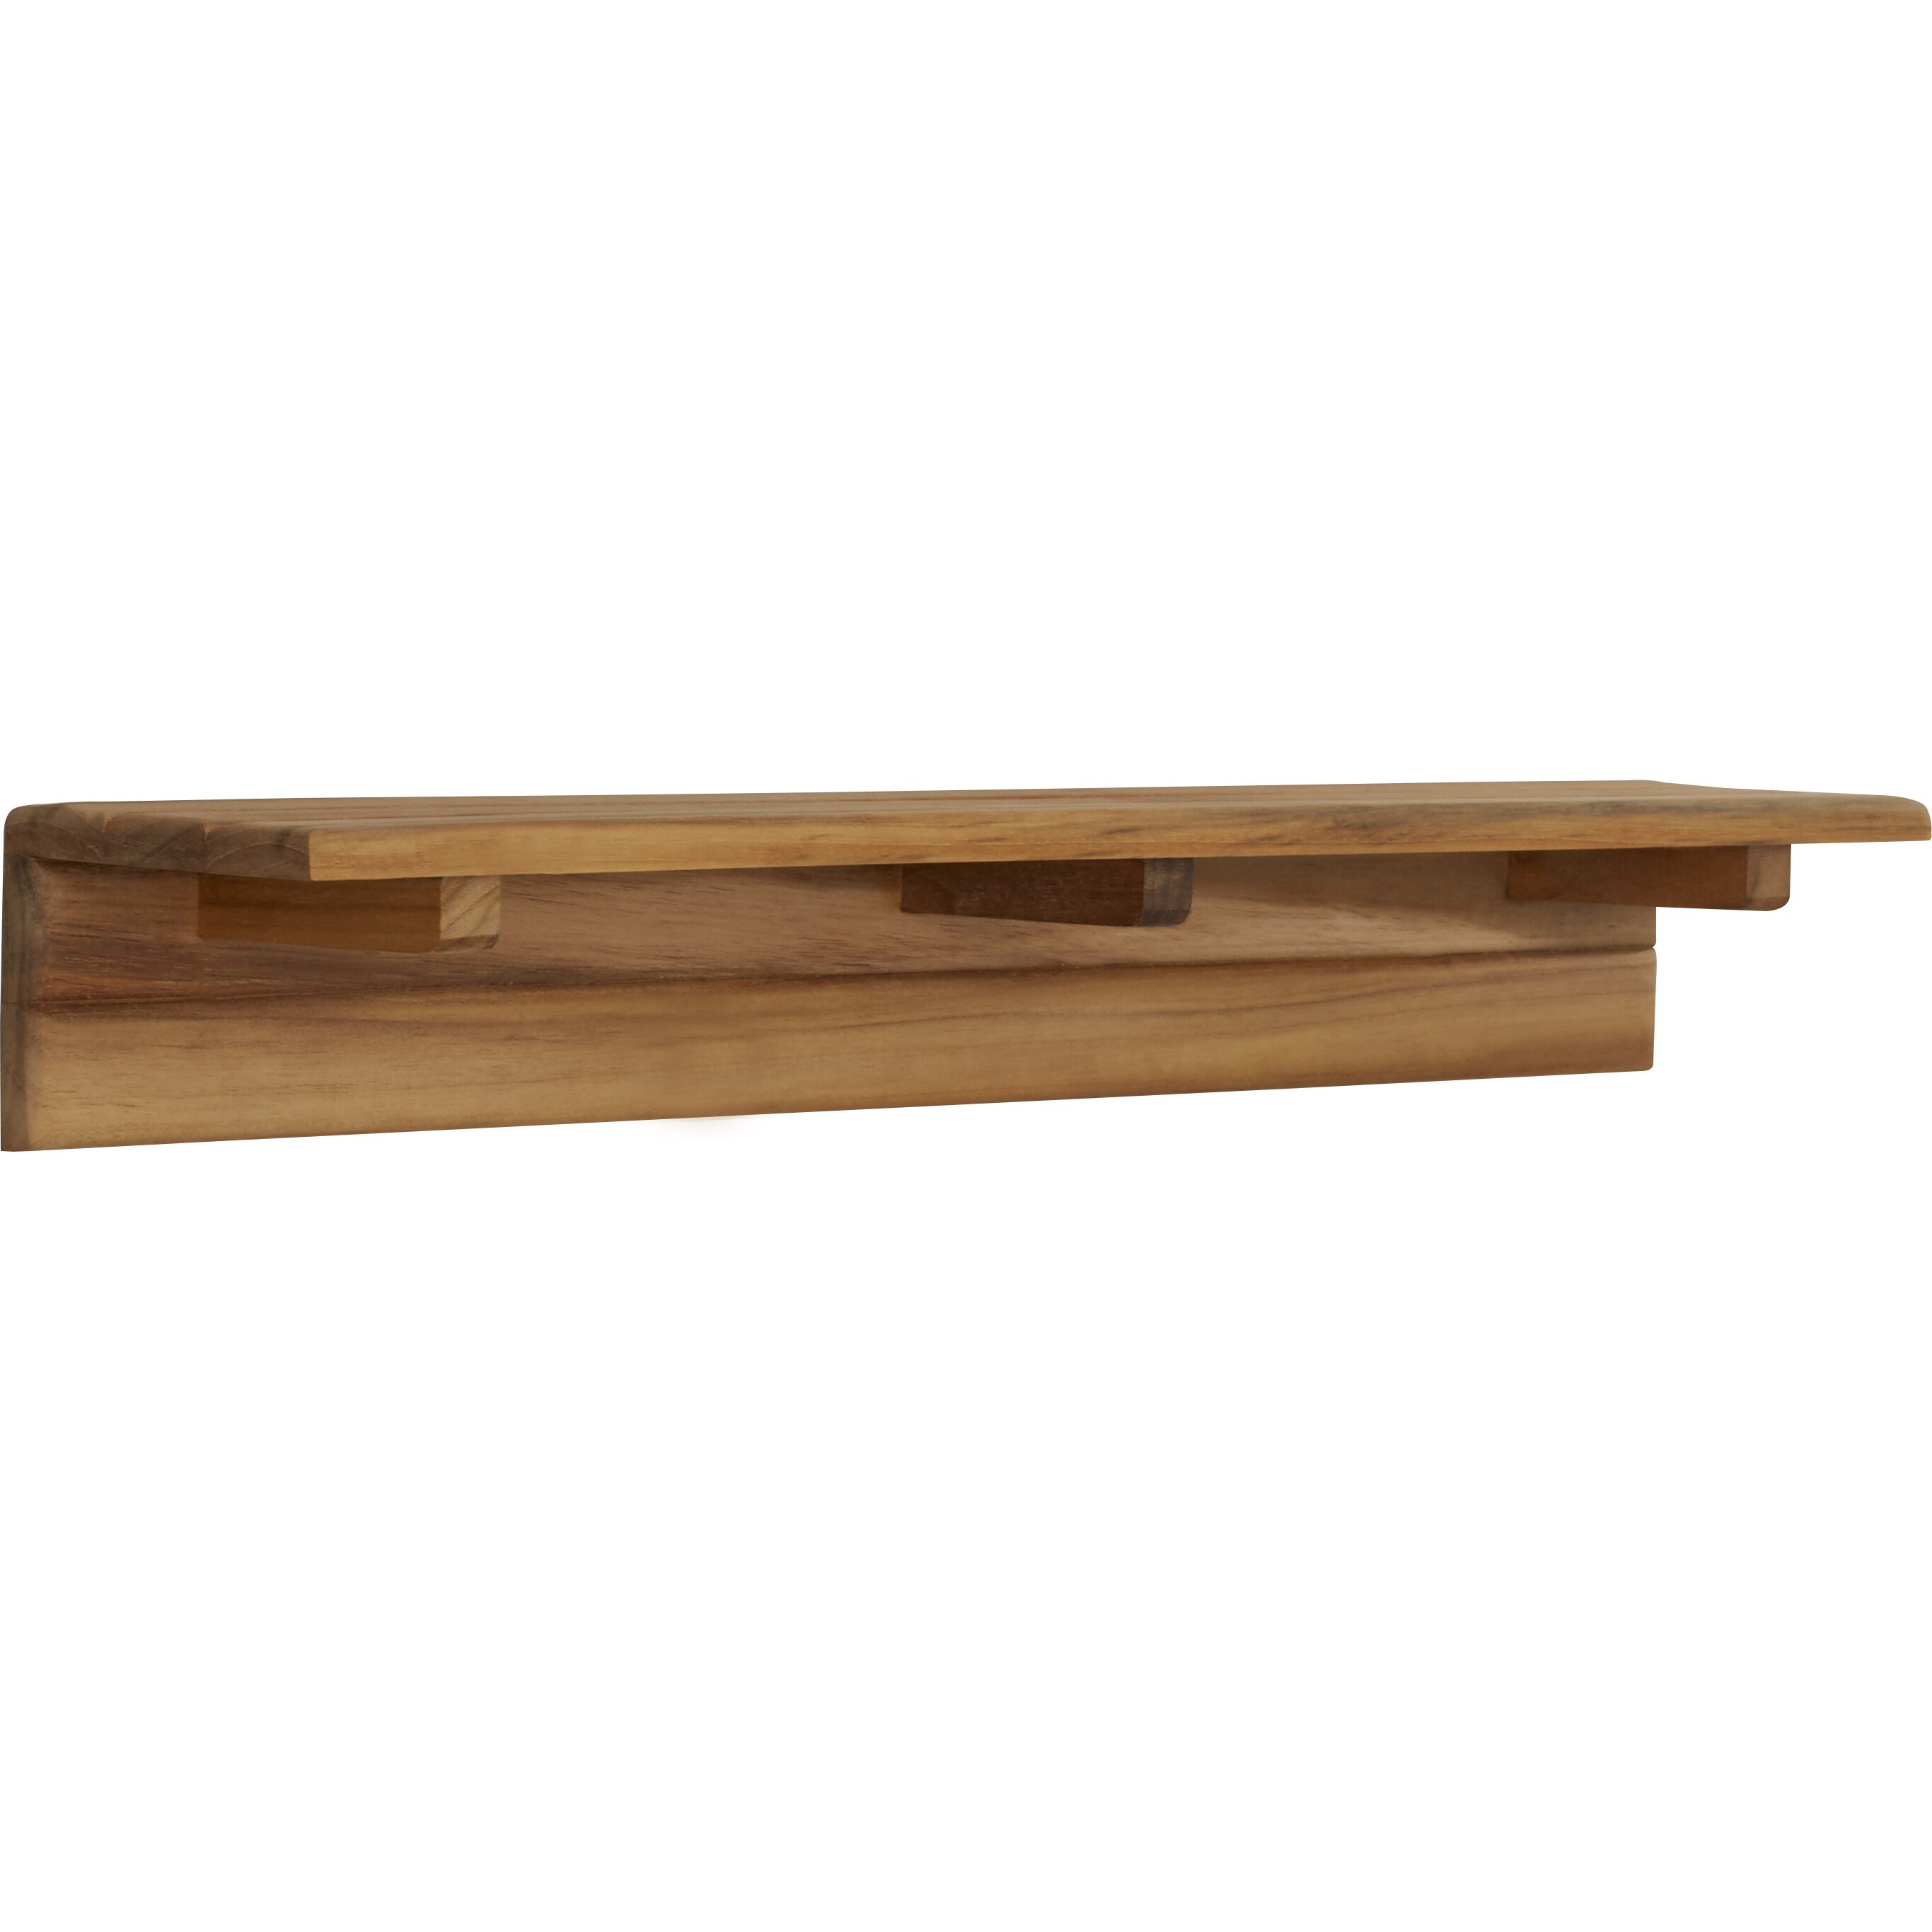 Bathroom Shelf Loon Peak Double Spring Bathroom Shelf Reviews Wayfair